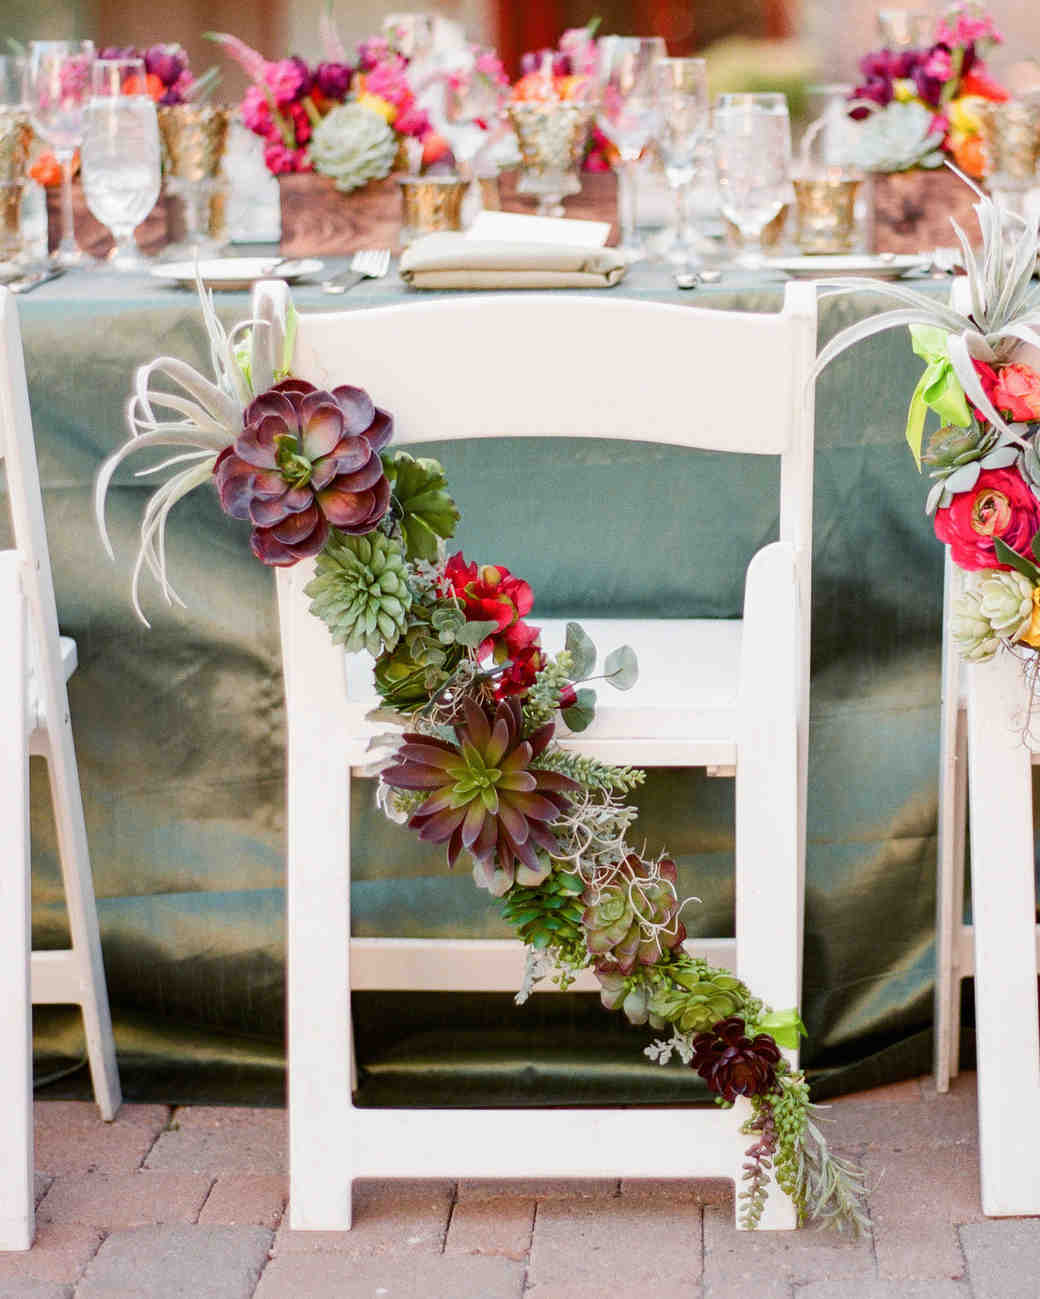 Flowers bride and groom: planting and care 2